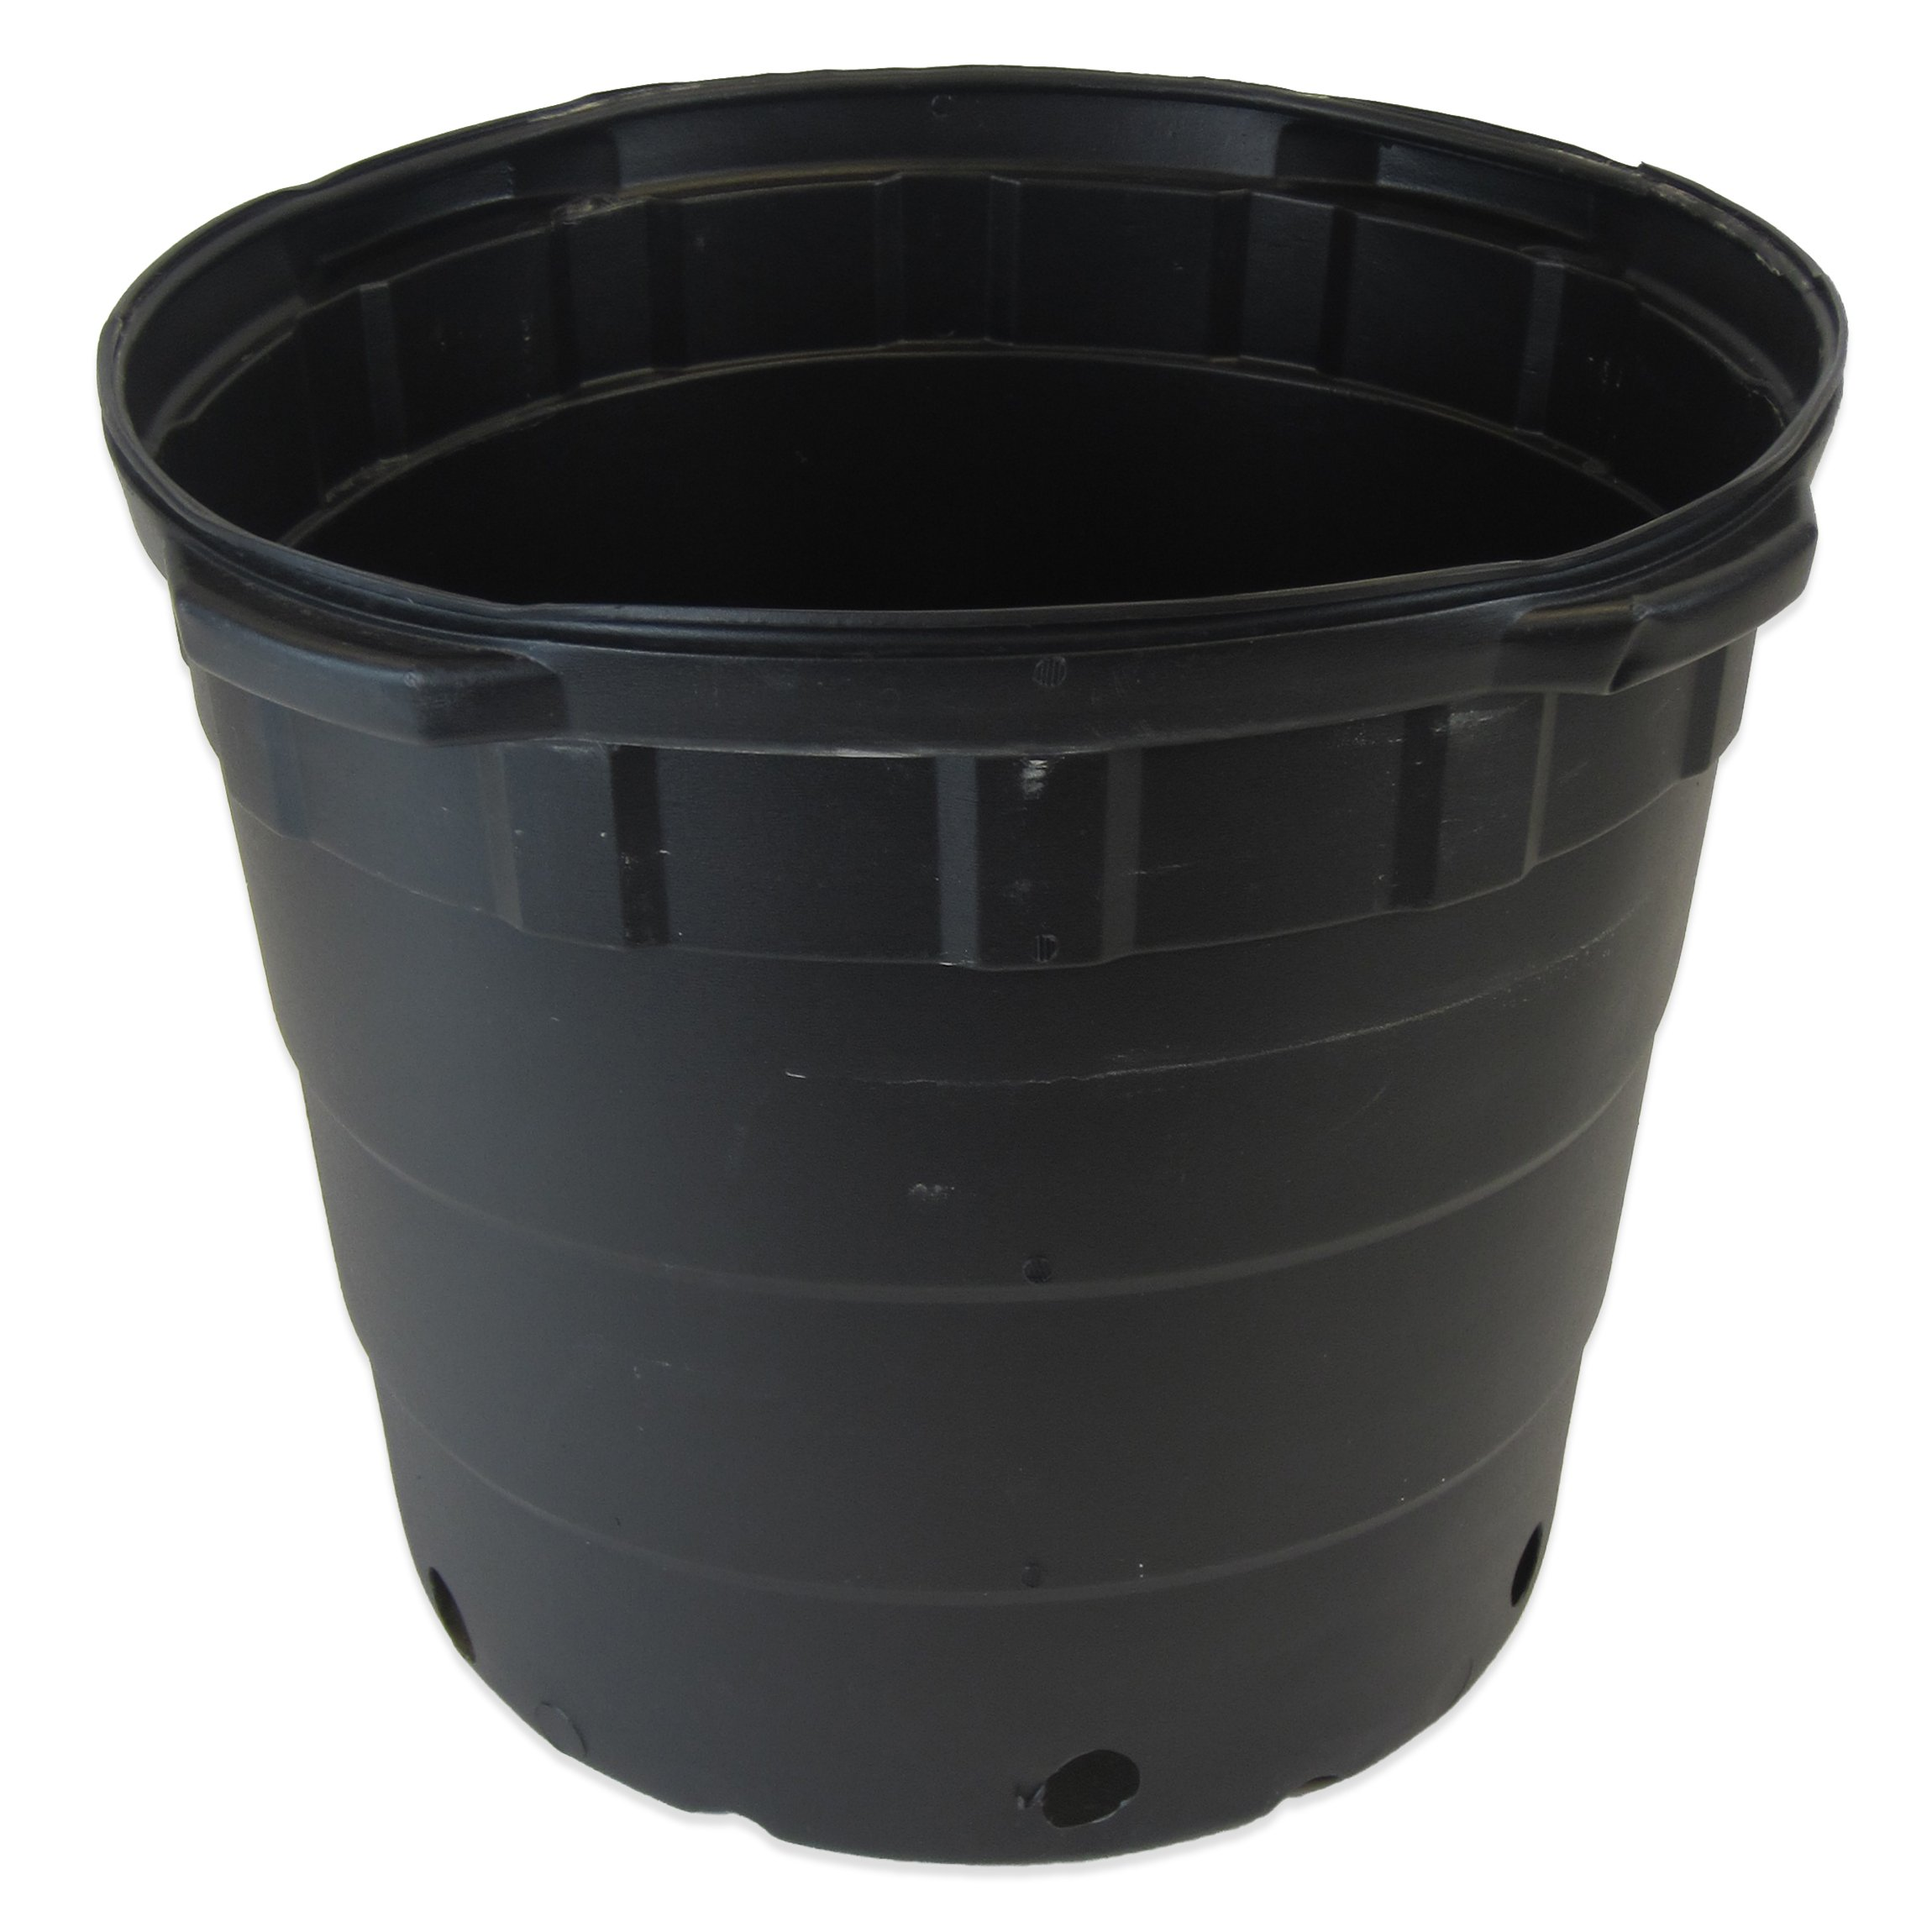 Viagrow 10 Gallon Round Nursery Pots - 20 Pack